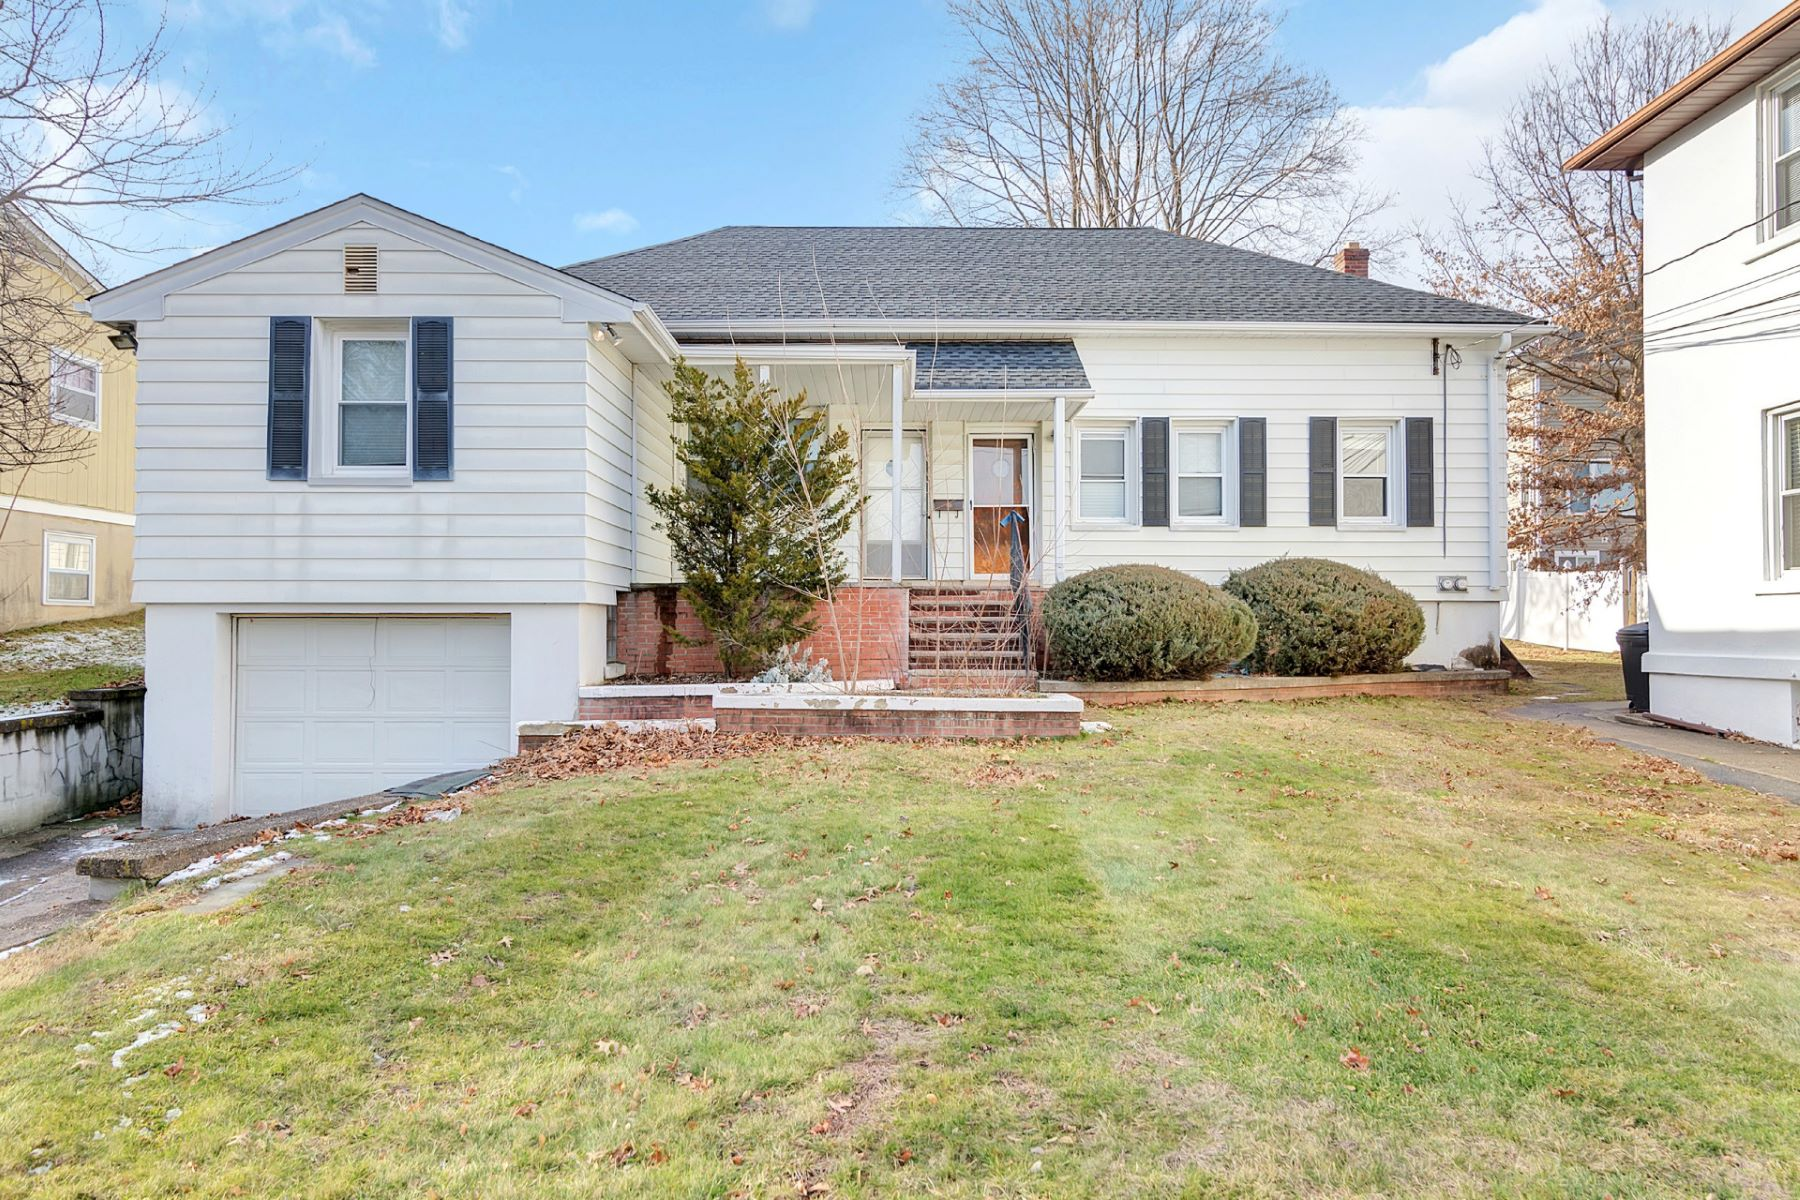 Multi-Family Home for Sale at Two by Two 177 Livingston St Northvale, New Jersey 07647 United States